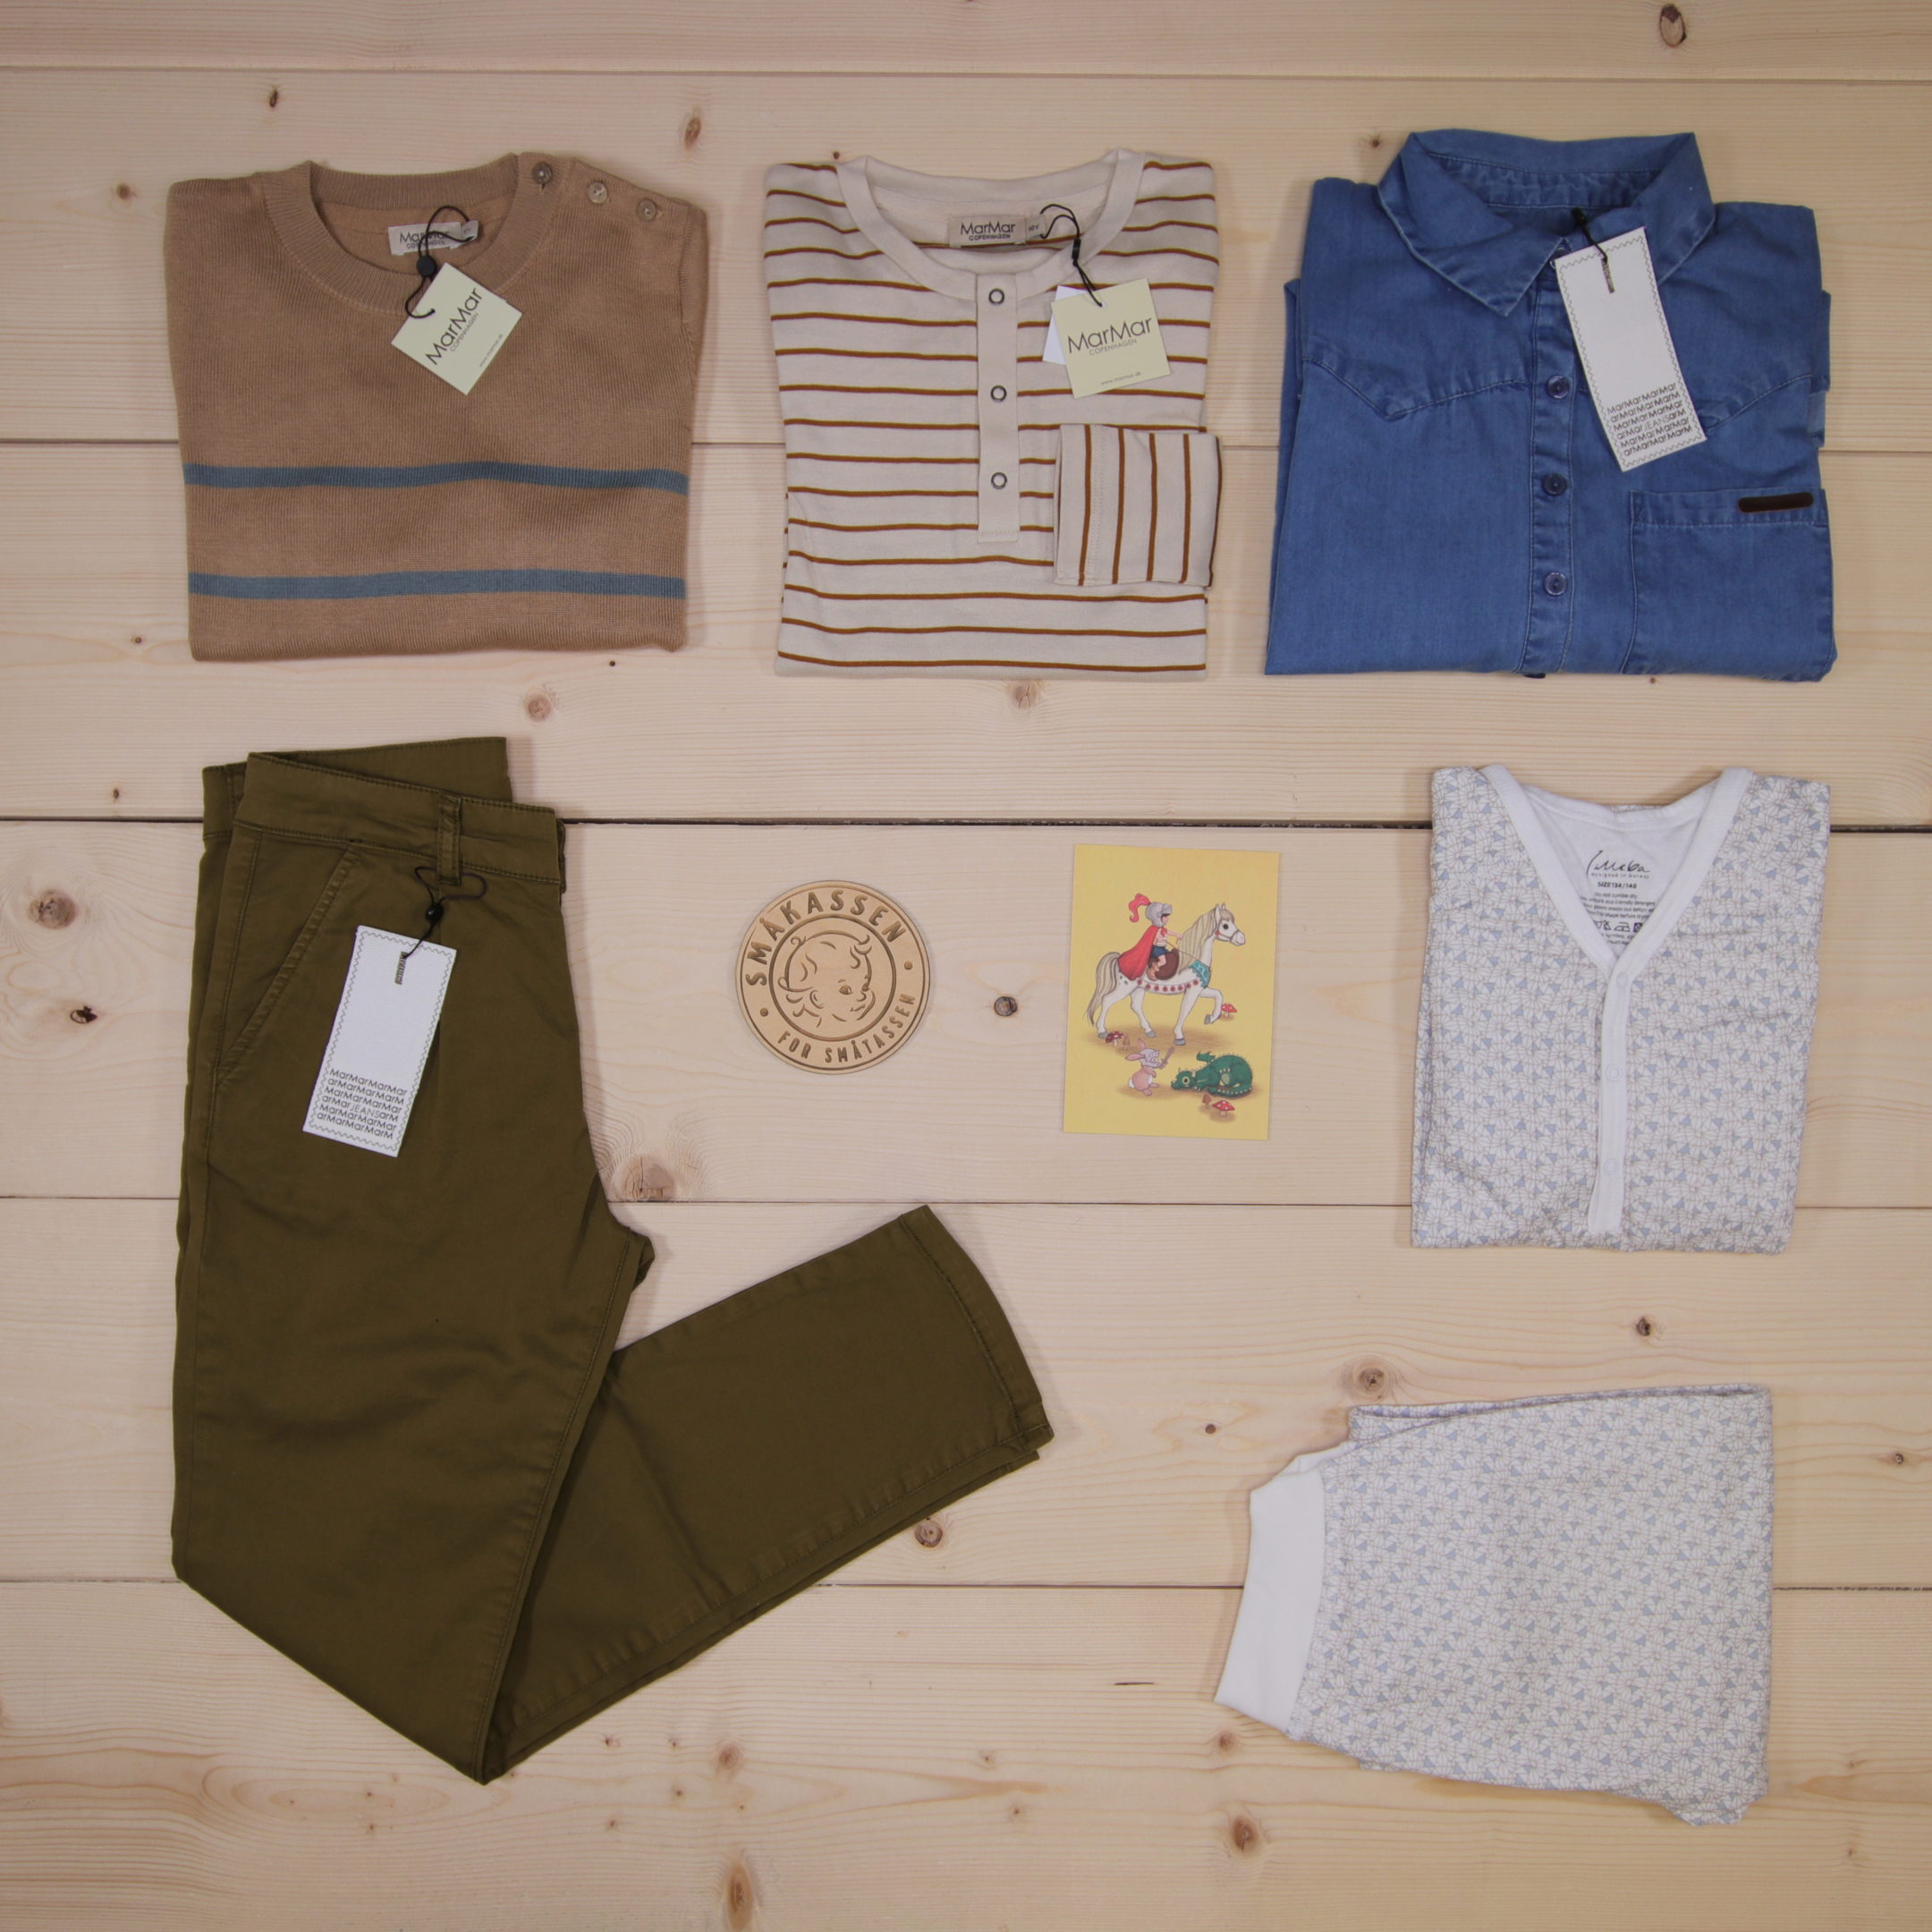 This is a 208 GBP* Småkassen that we prepared for a boy  in the styles cute and cool in size 140